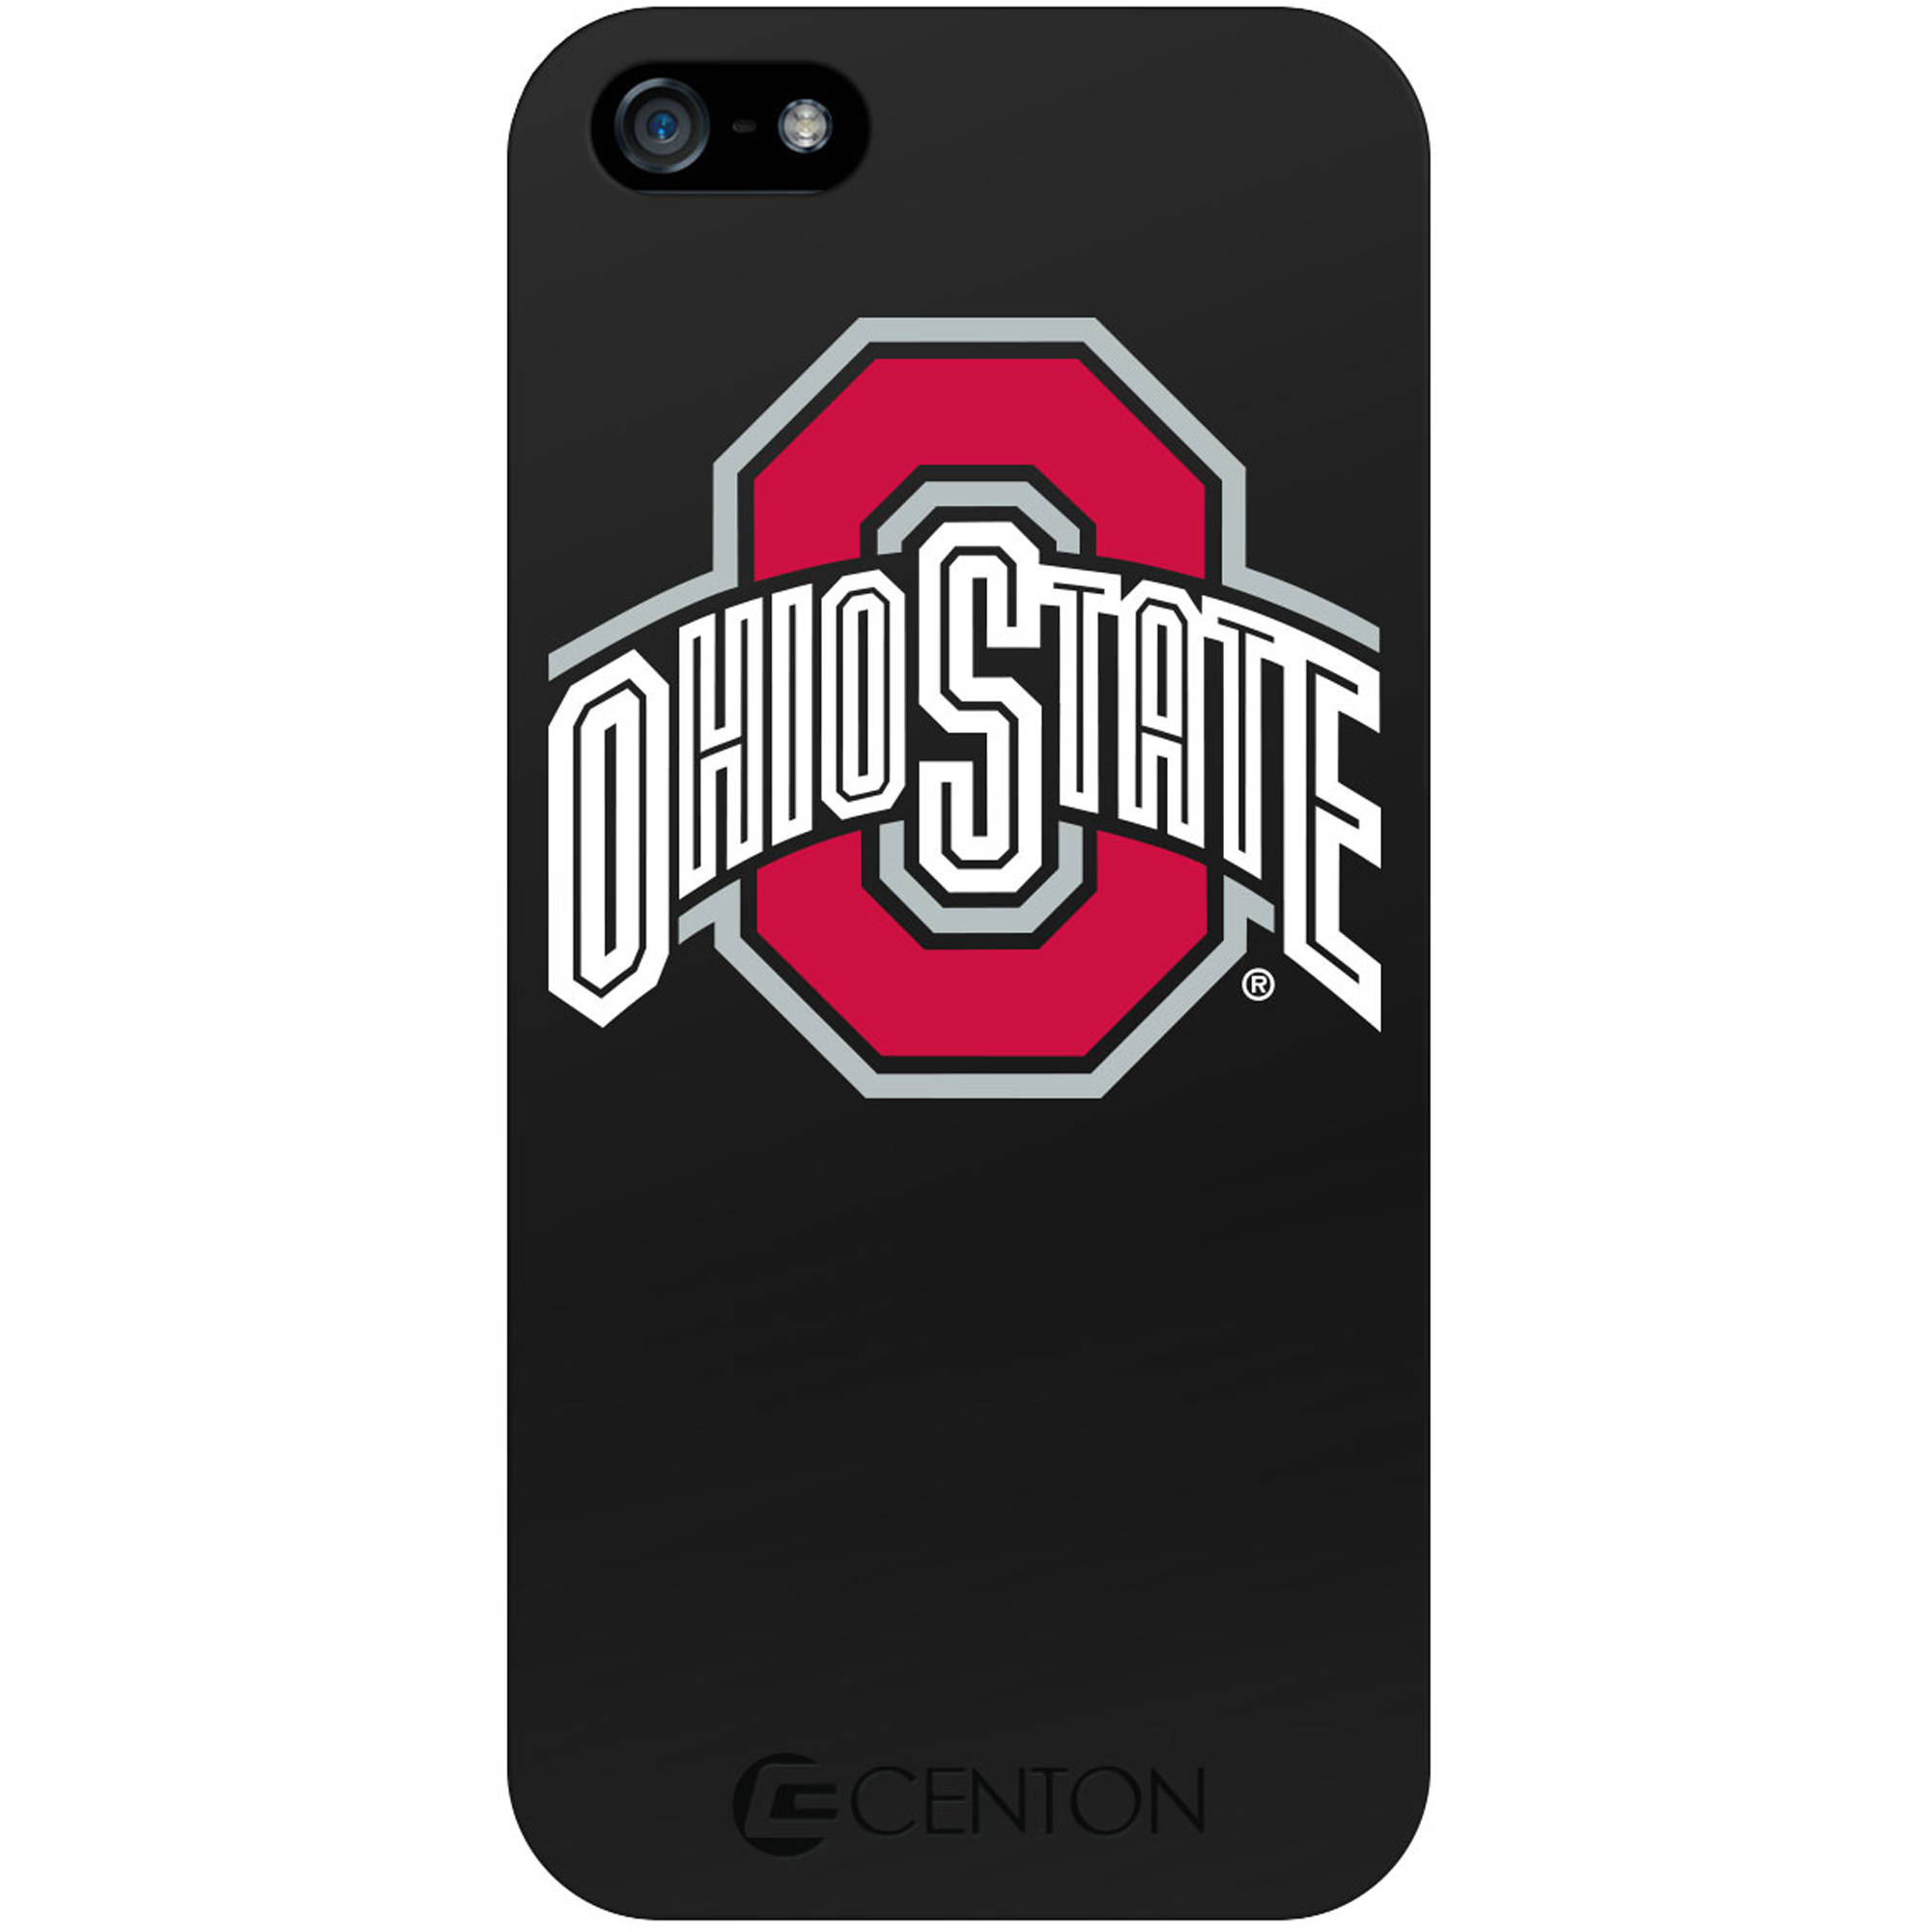 Apple iPhone 5 Classic Case, Ohio State University